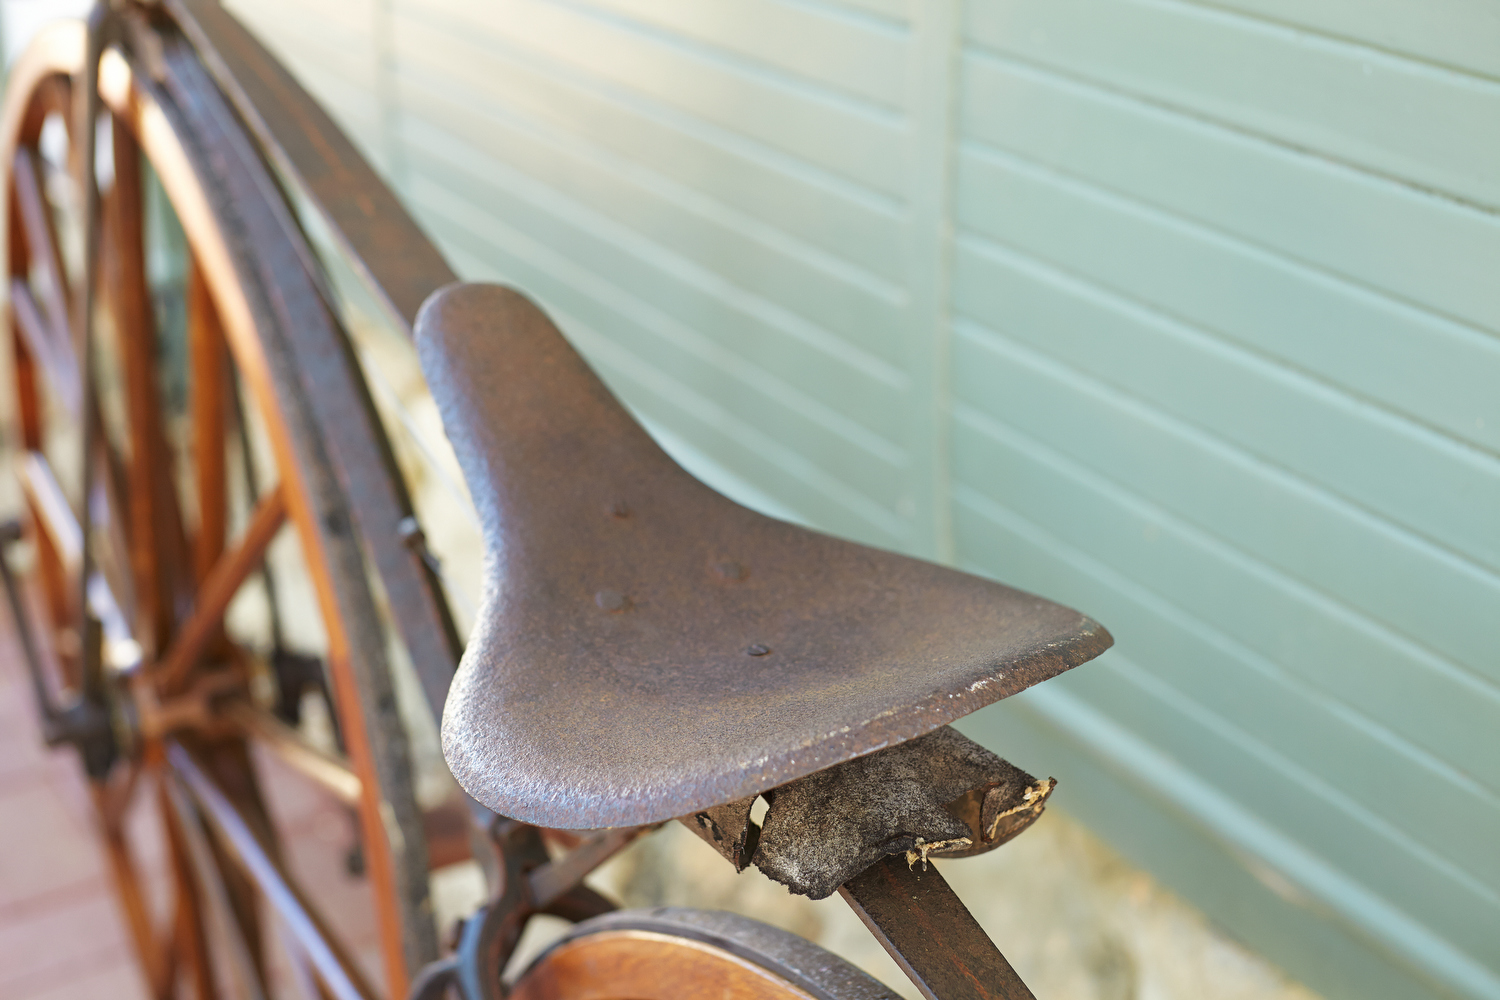 MichauxVelocipede20140202_1547_s.JPG